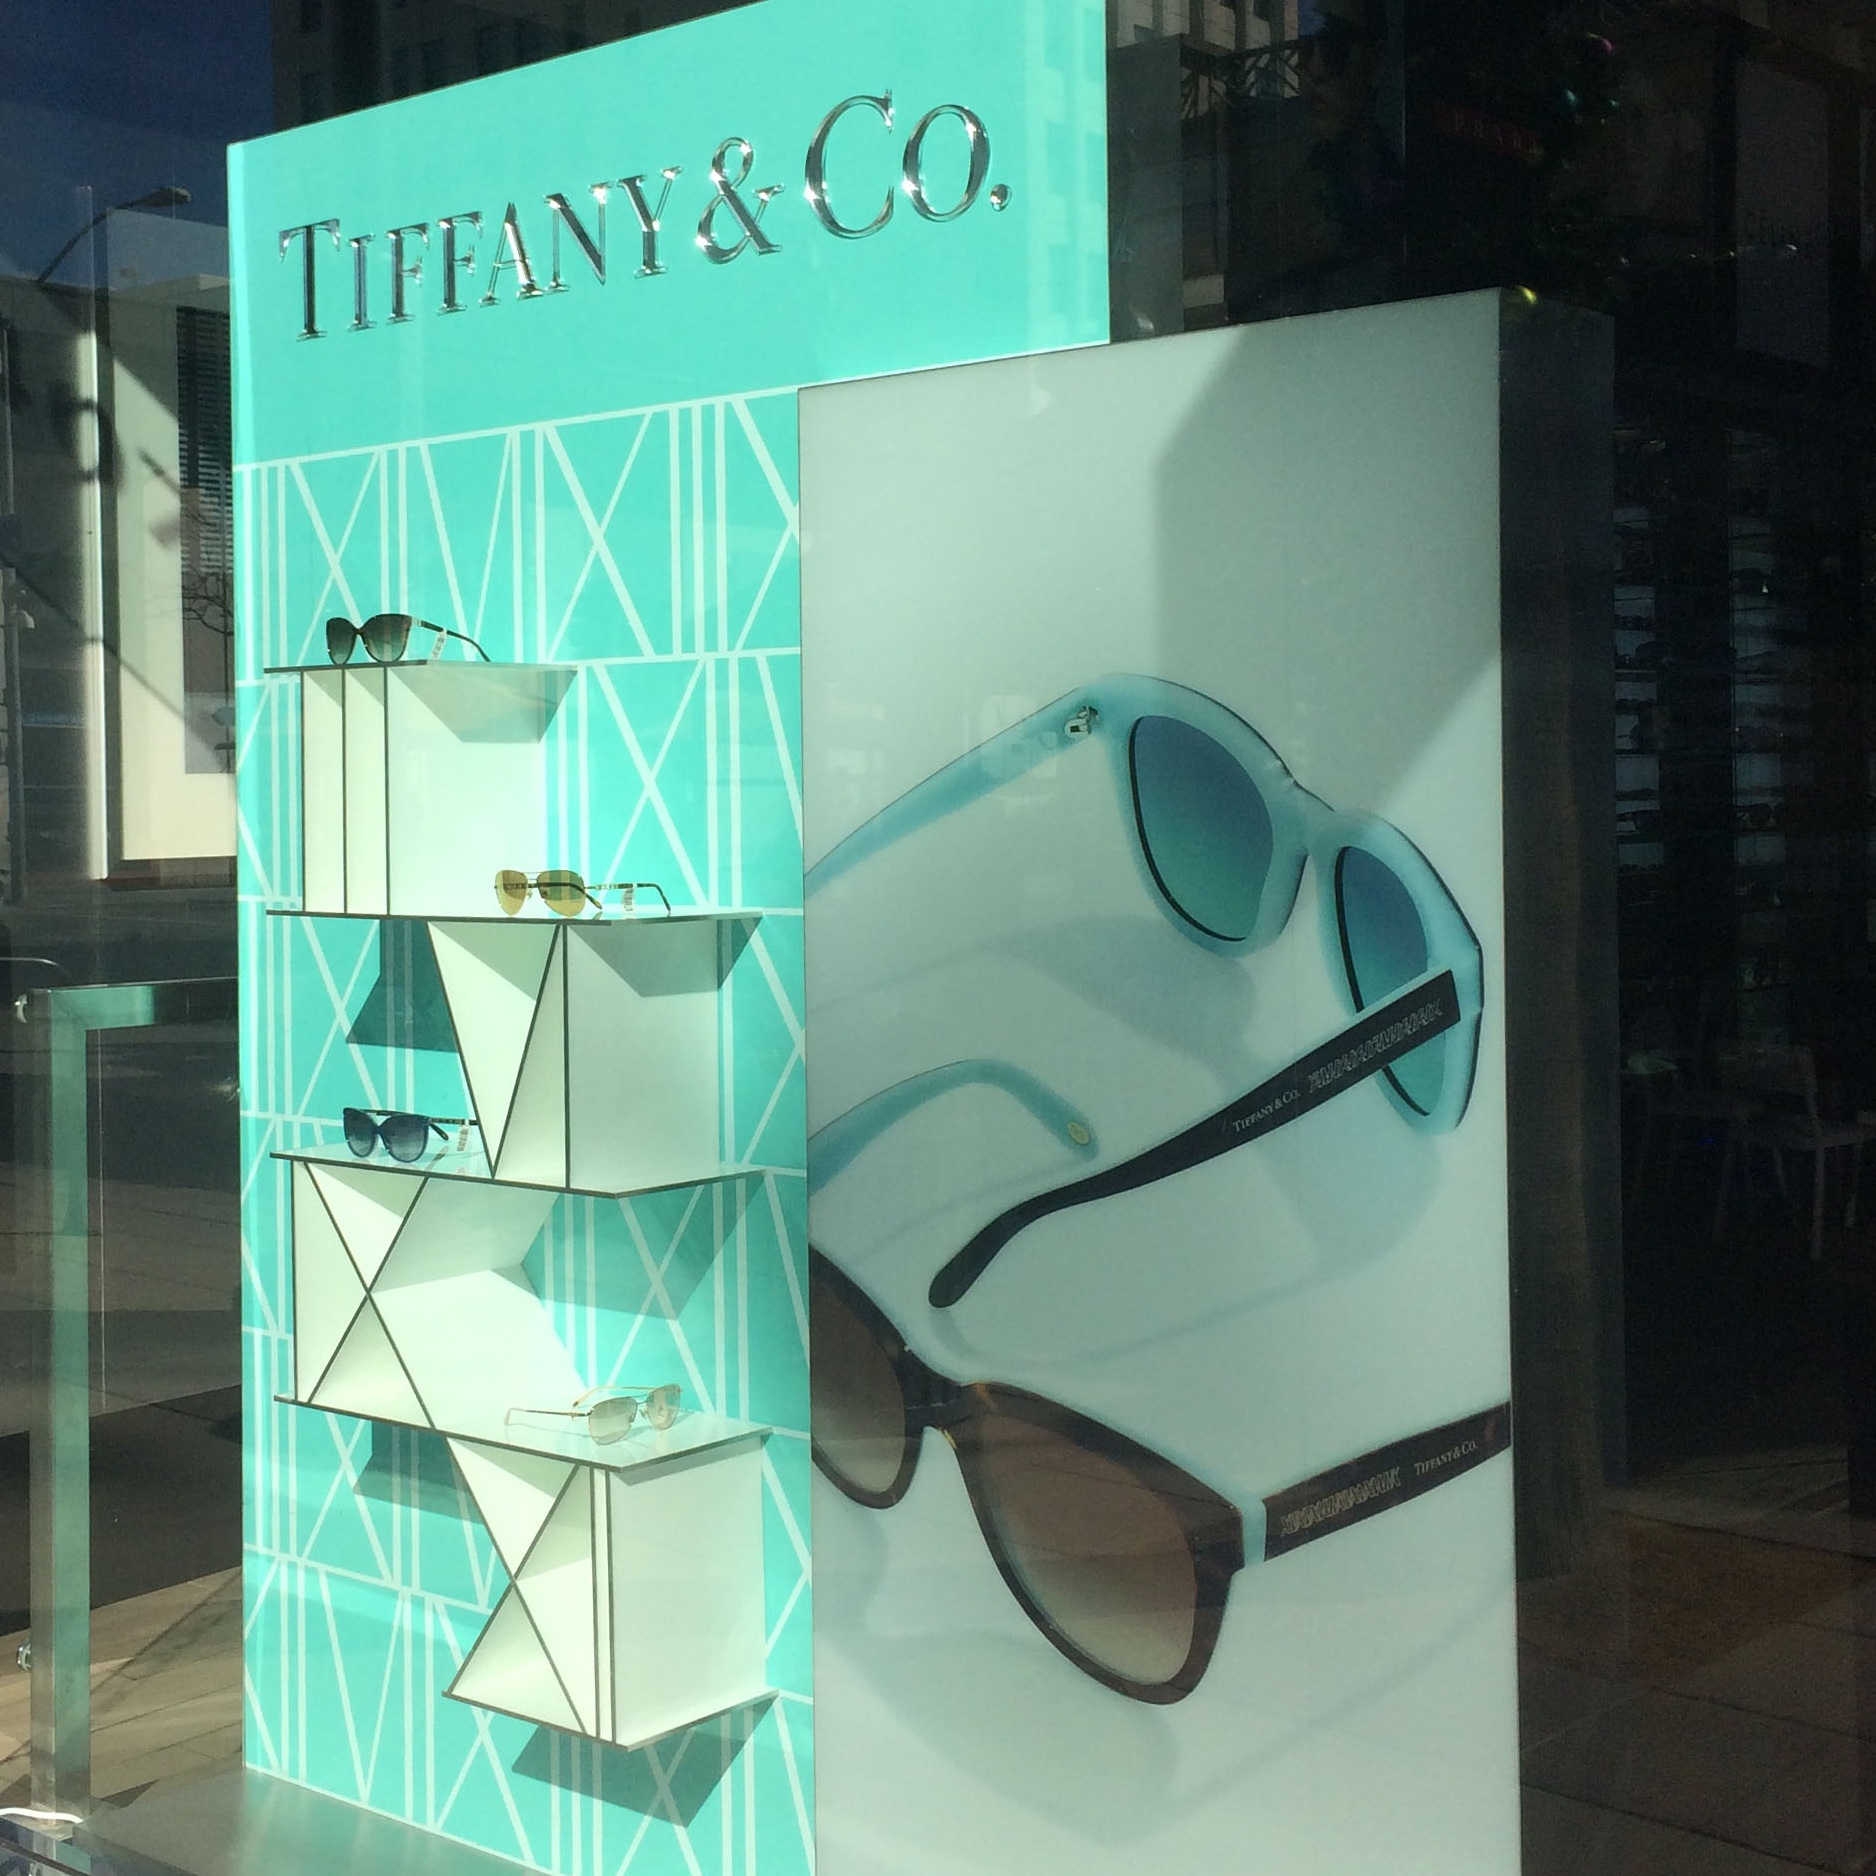 Tiffany & Company Eyewear  - Window Display